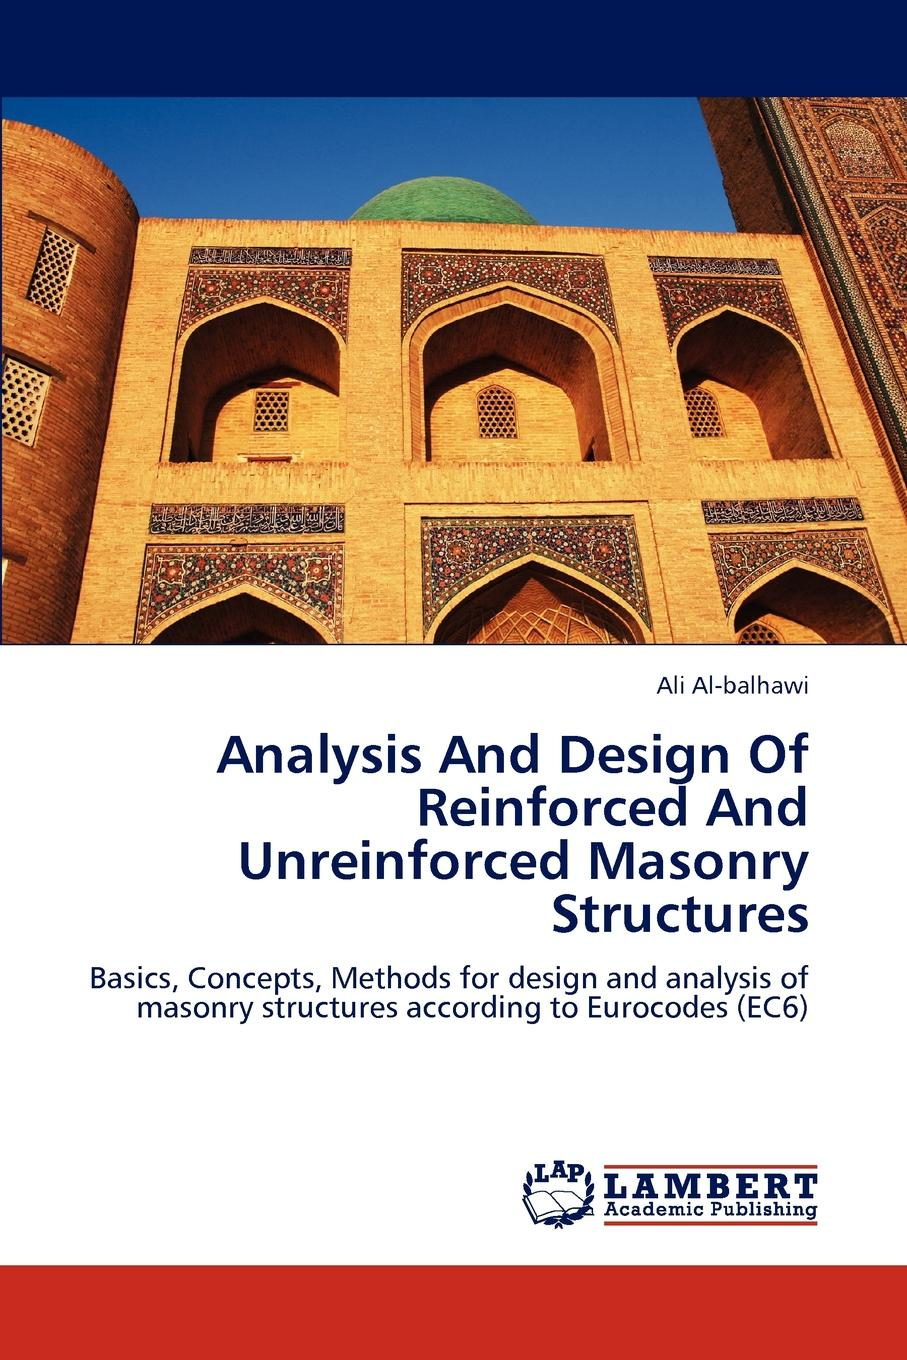 Ali Al-Balhawi Analysis and Design of Reinforced and Unreinforced Masonry Structures цена и фото